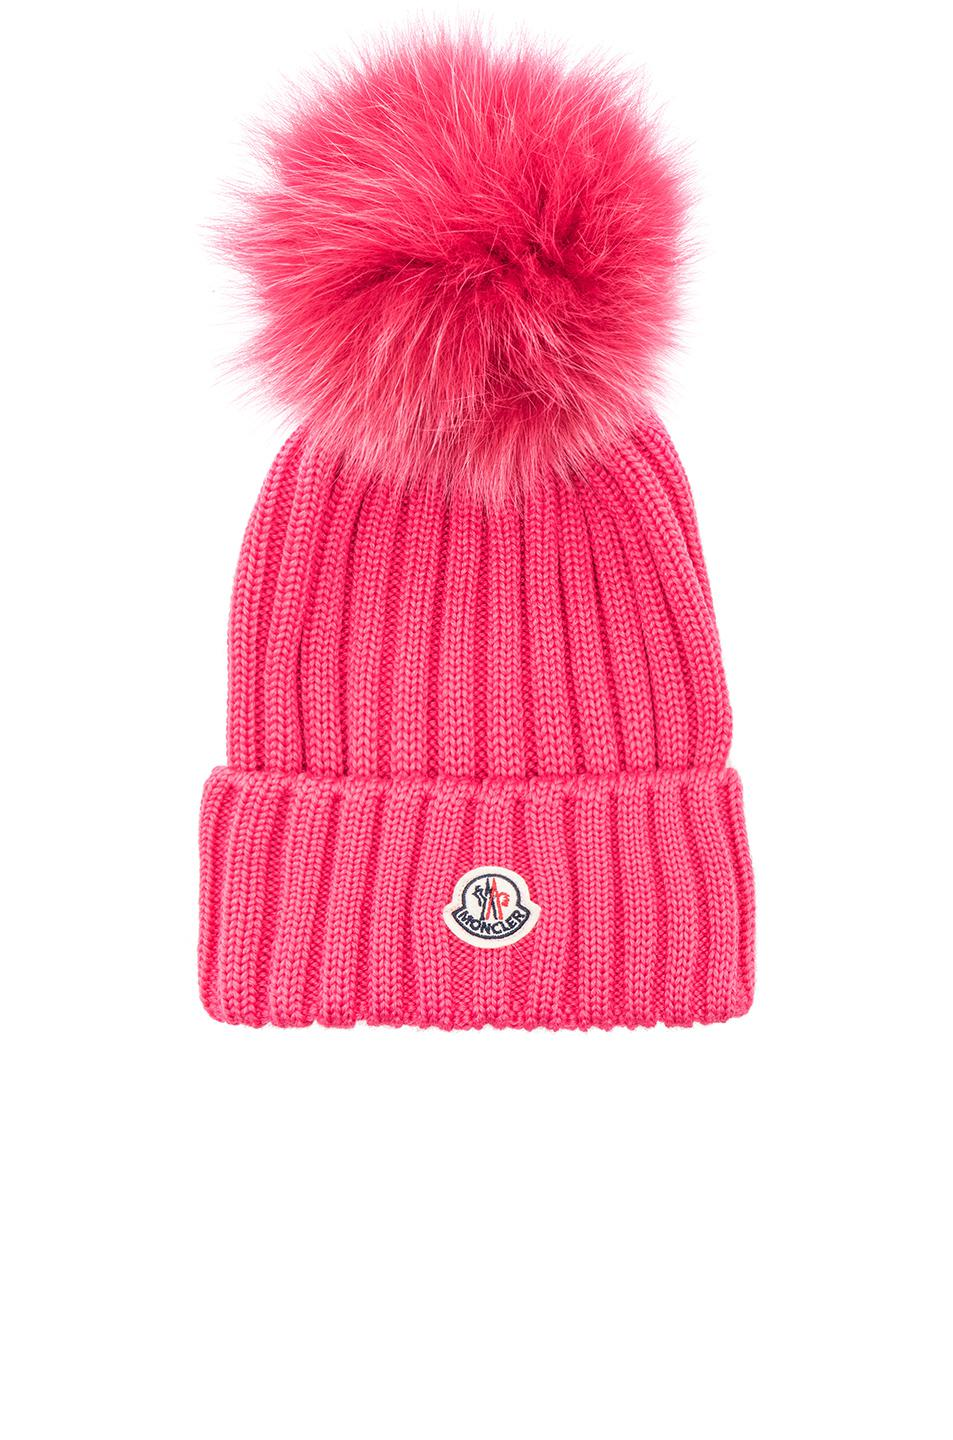 d7d8f9fe703c81 Lyst - Moncler Pom Beanie in Pink